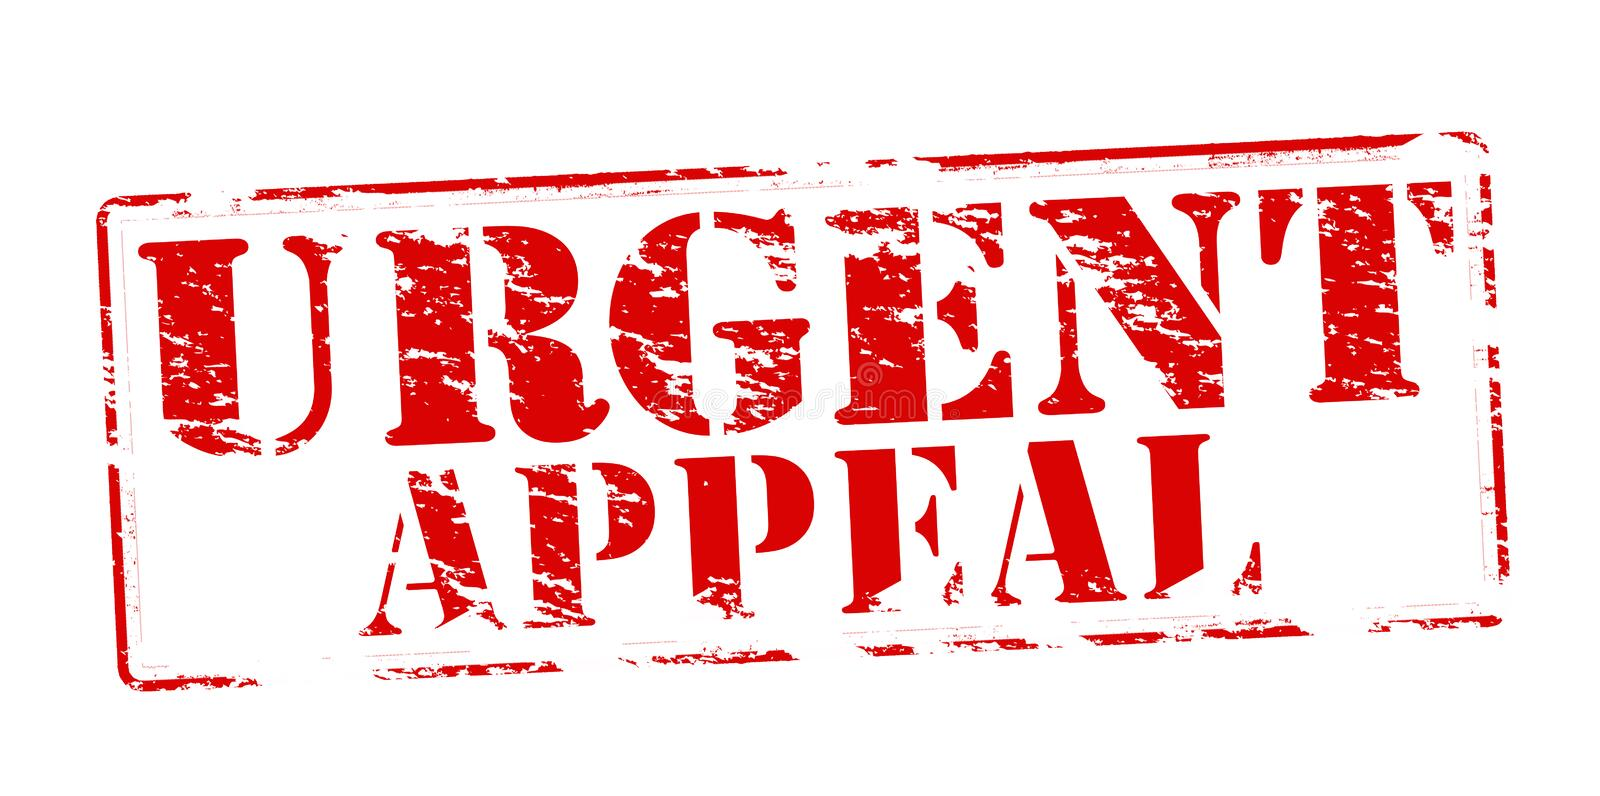 Urgent appeal. Rubber stamp with text urgent appeal inside, vector illustration stock illustration